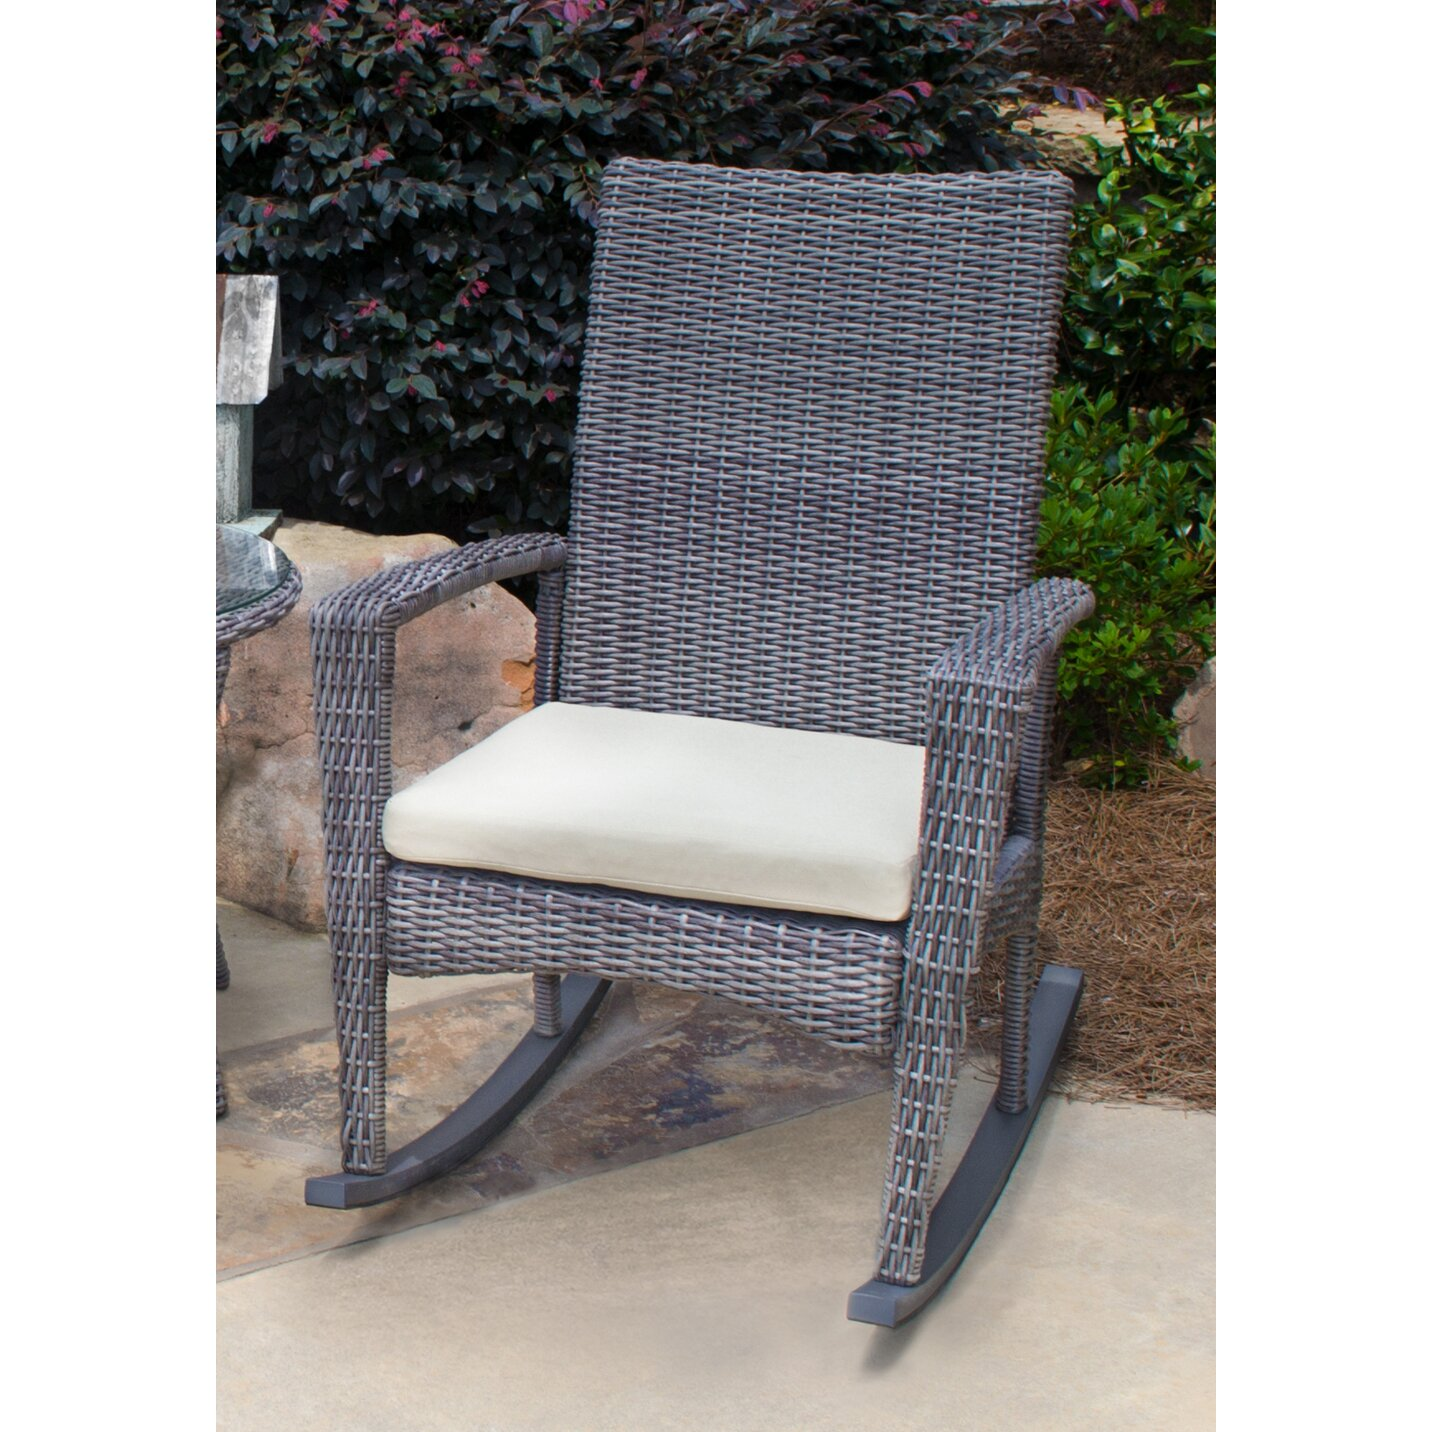 Wayfair wicker furniture trend home design and decor